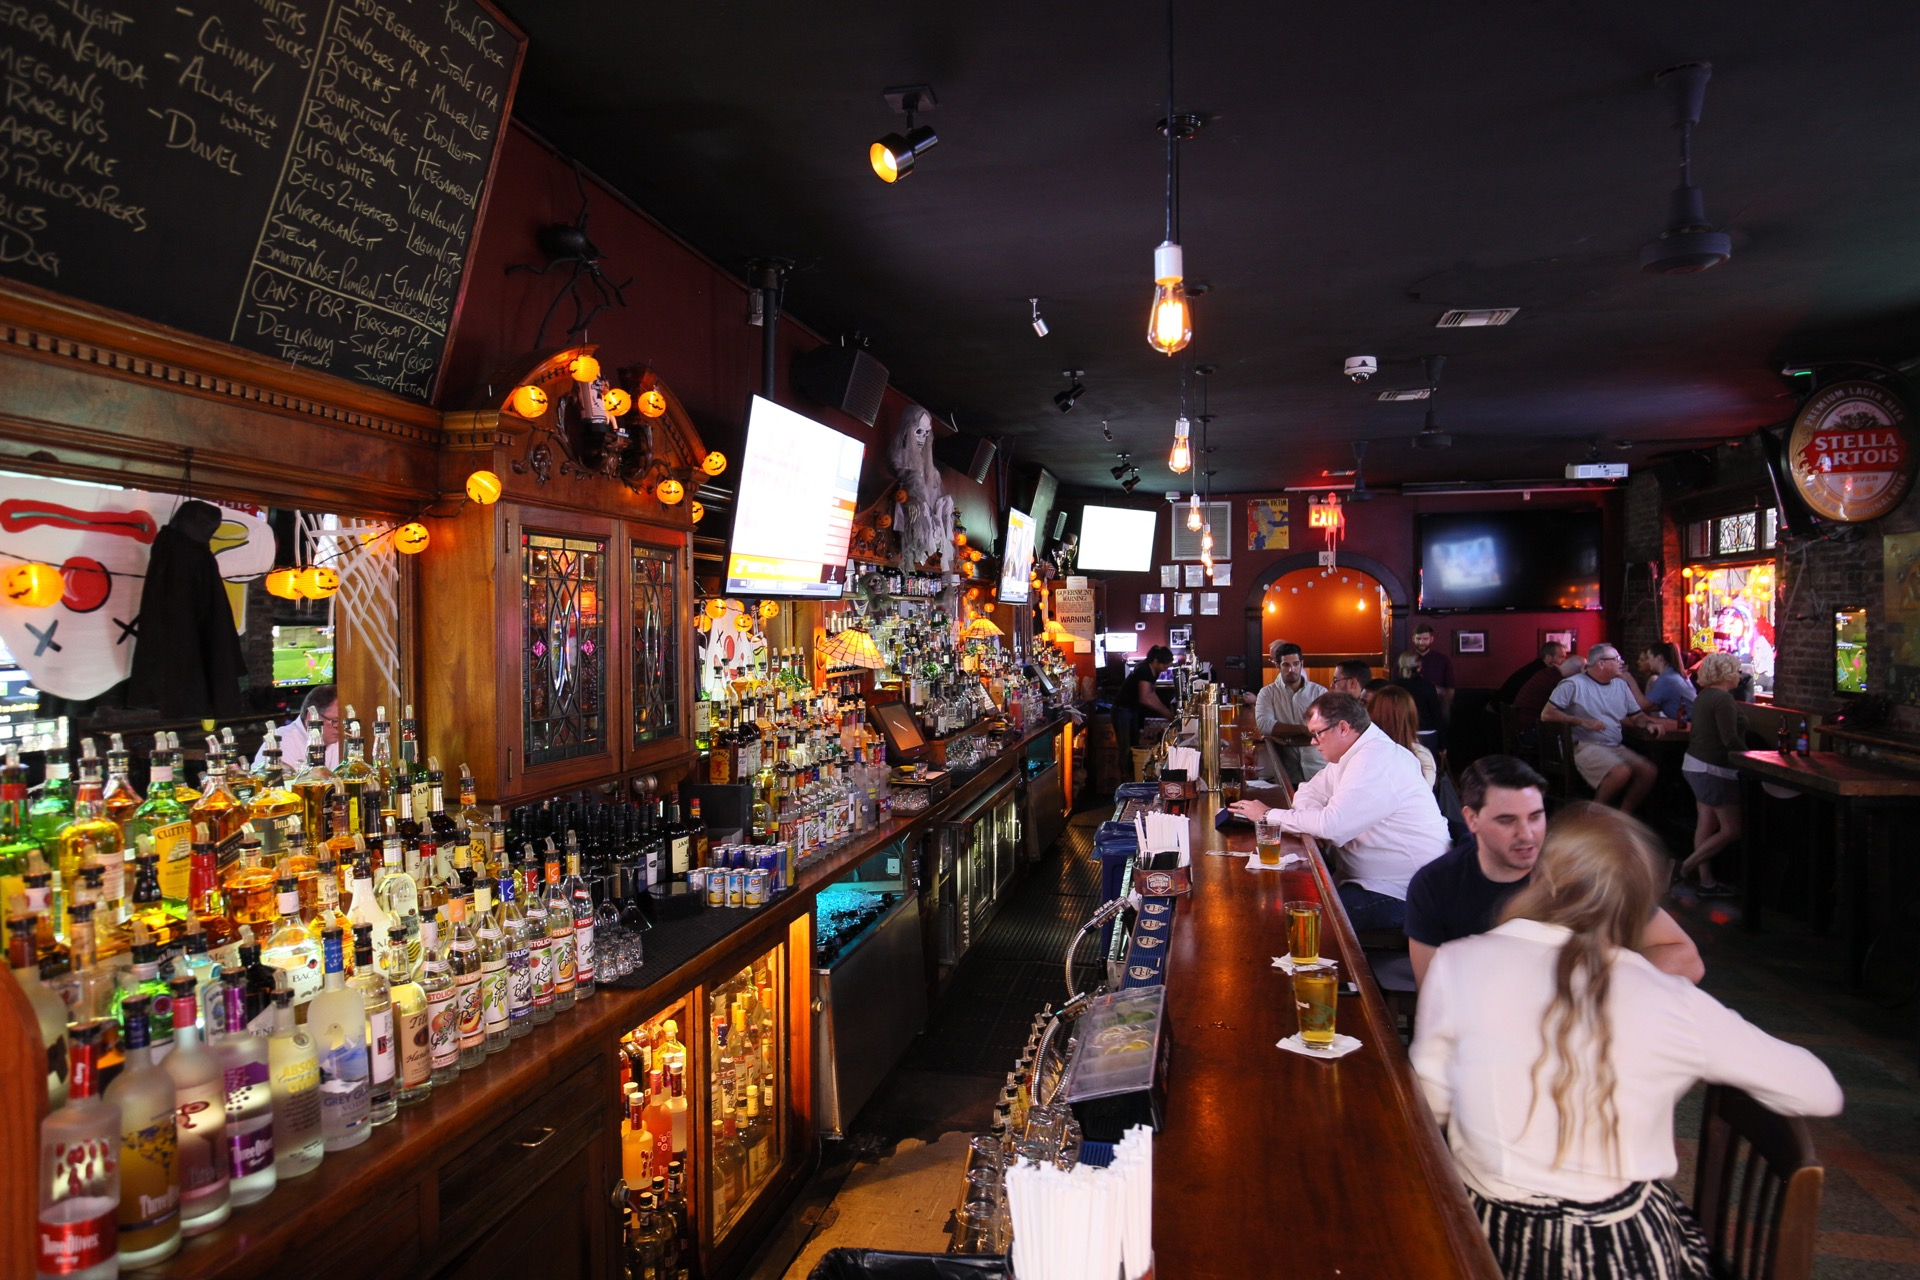 The Best Places To Watch Sports In NYC - New York - The Infatuation f72c0e801ab7a